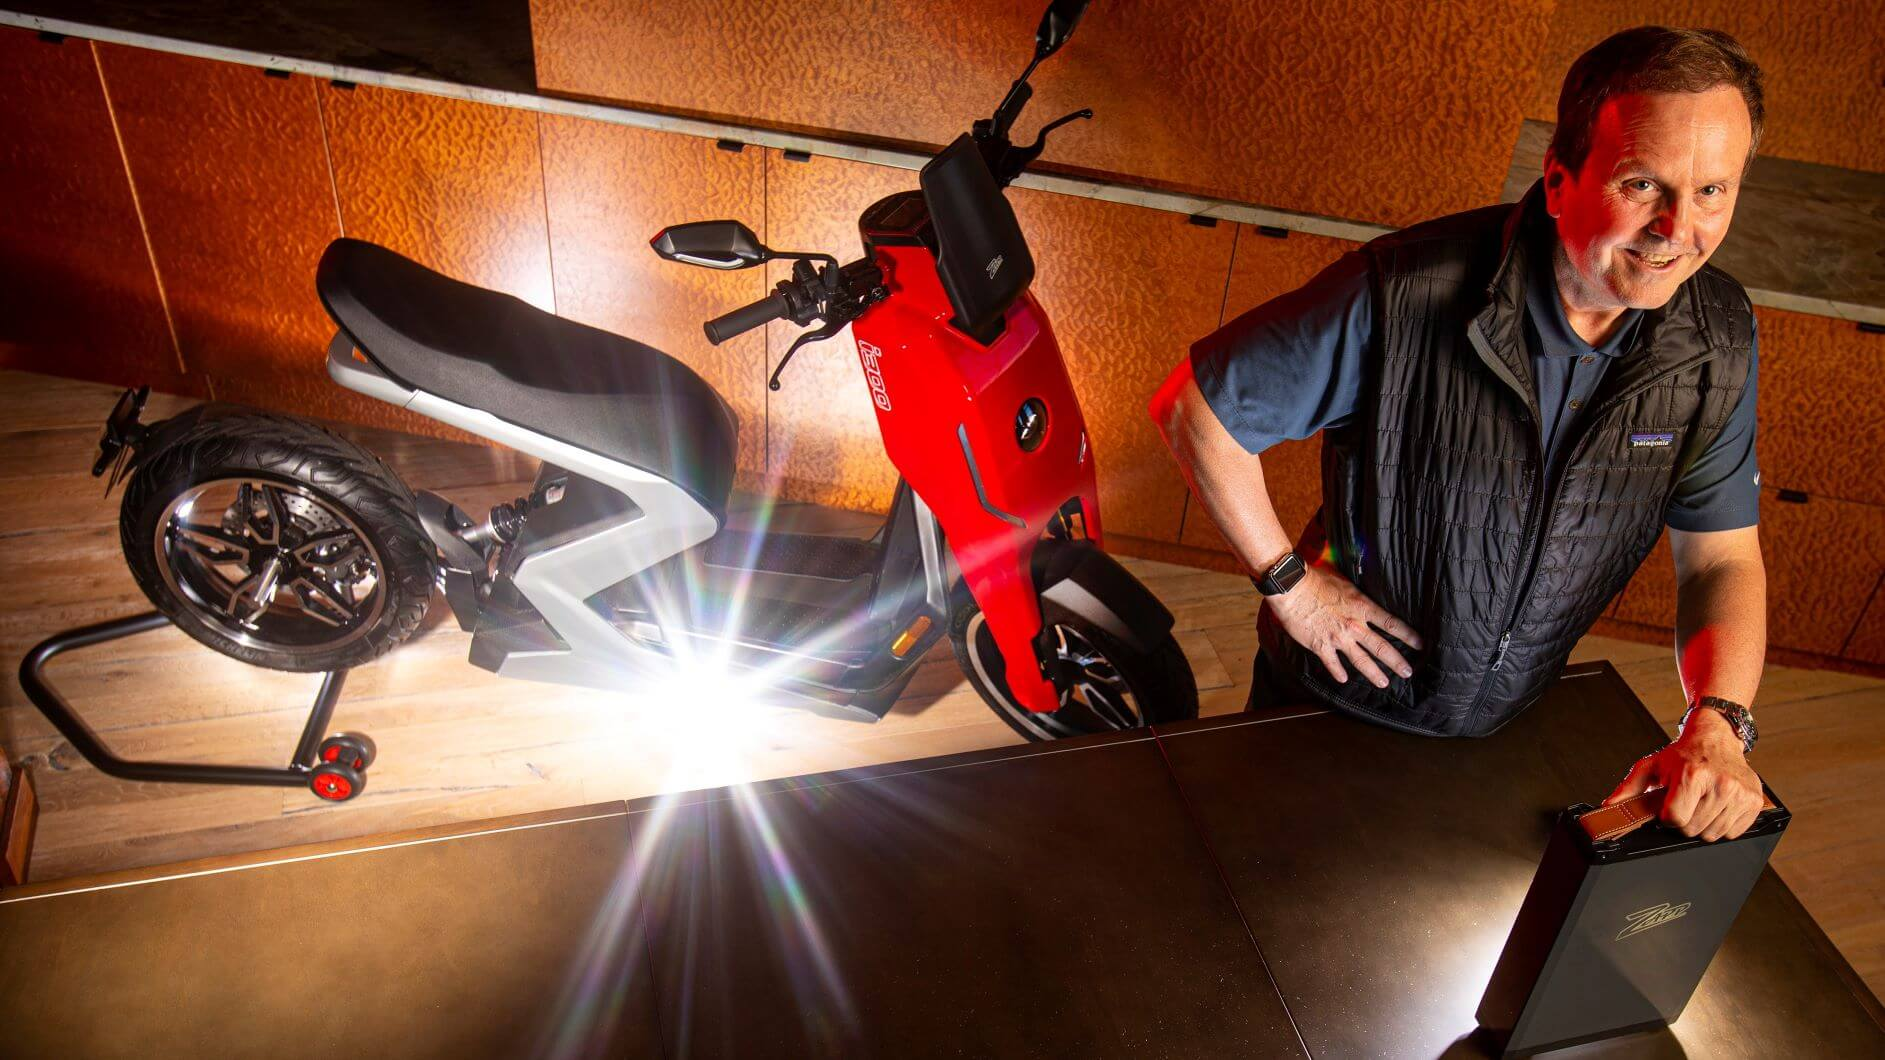 Zapp Scooters Poised To Enter Crowded Electric Motorbike Segment